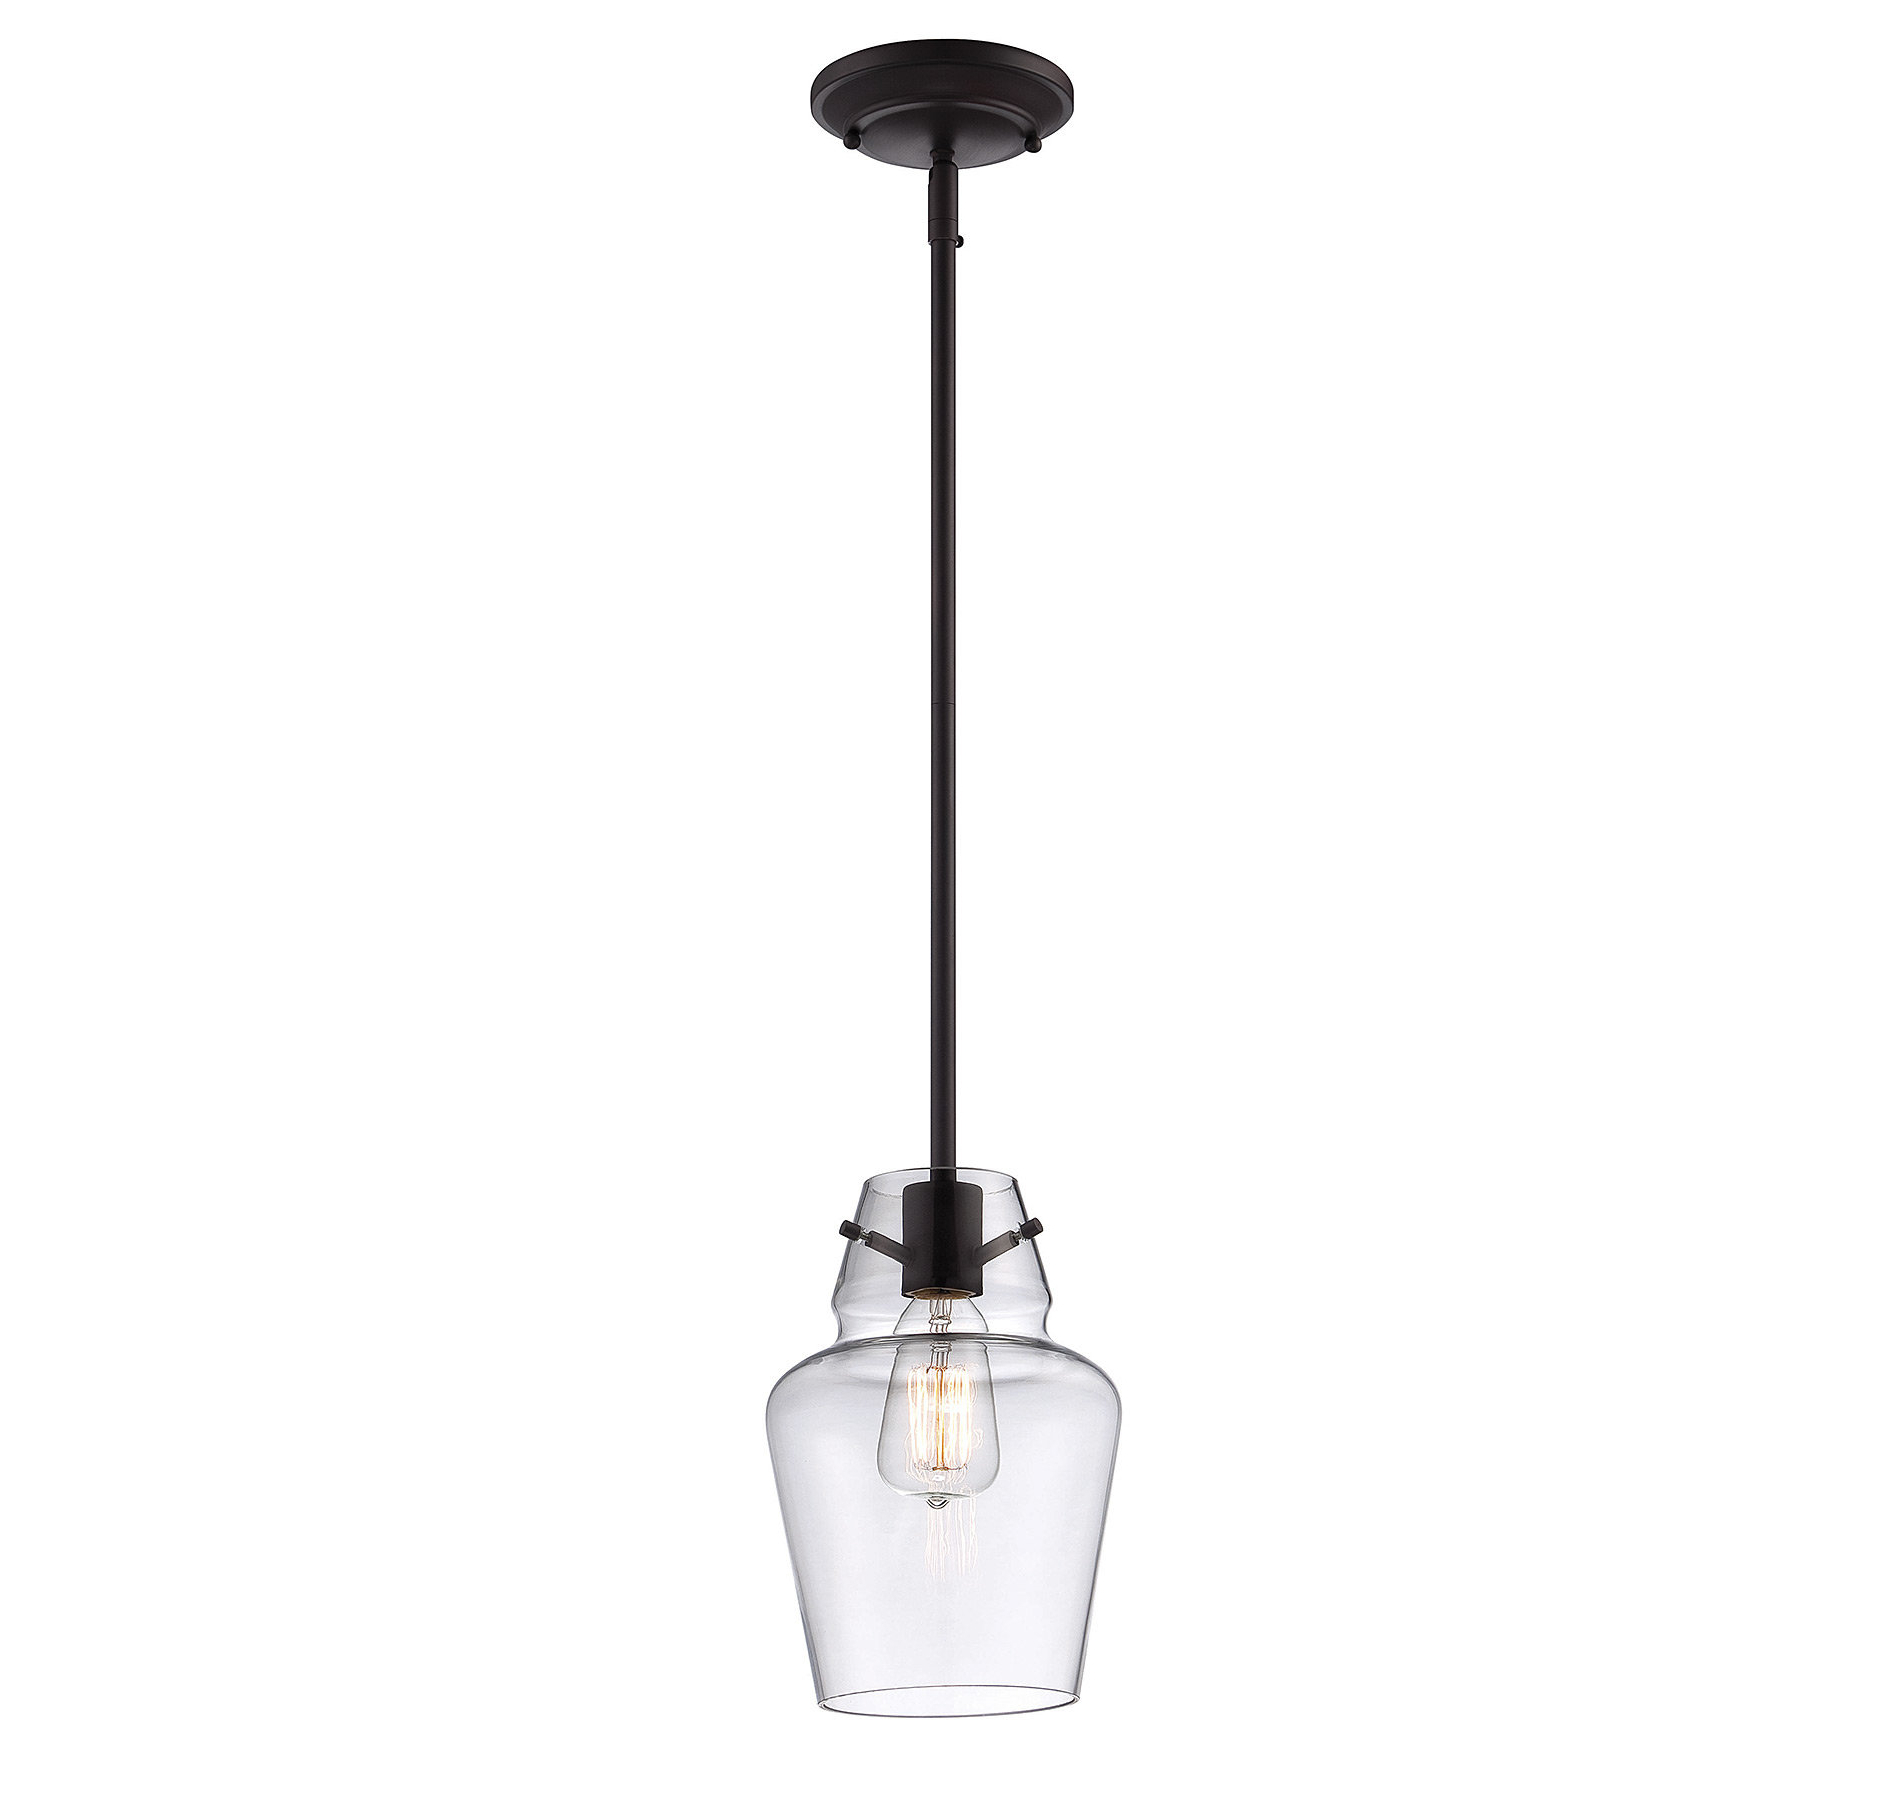 Roslindale 1 Light Single Bell Pendant With Regard To Most Recently Released Sue 1 Light Single Jar Pendants (View 8 of 20)